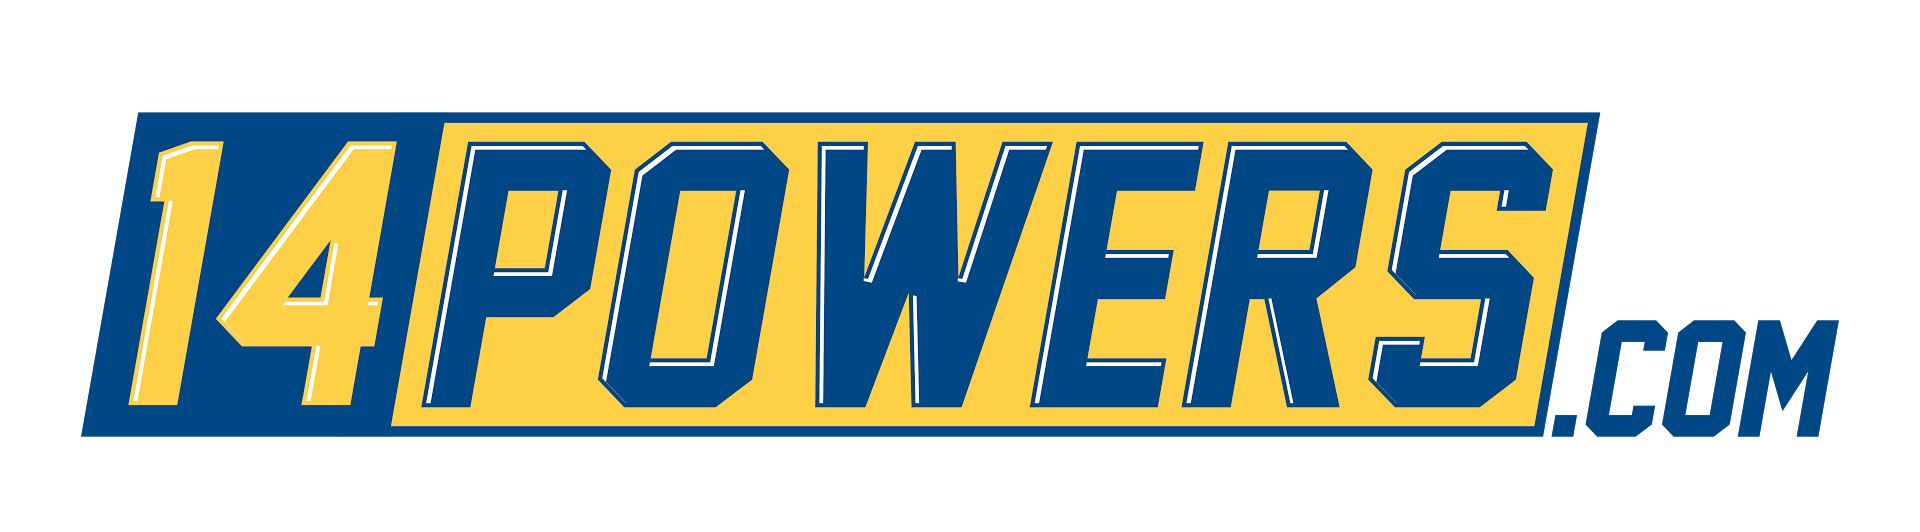 14Powers.com logo